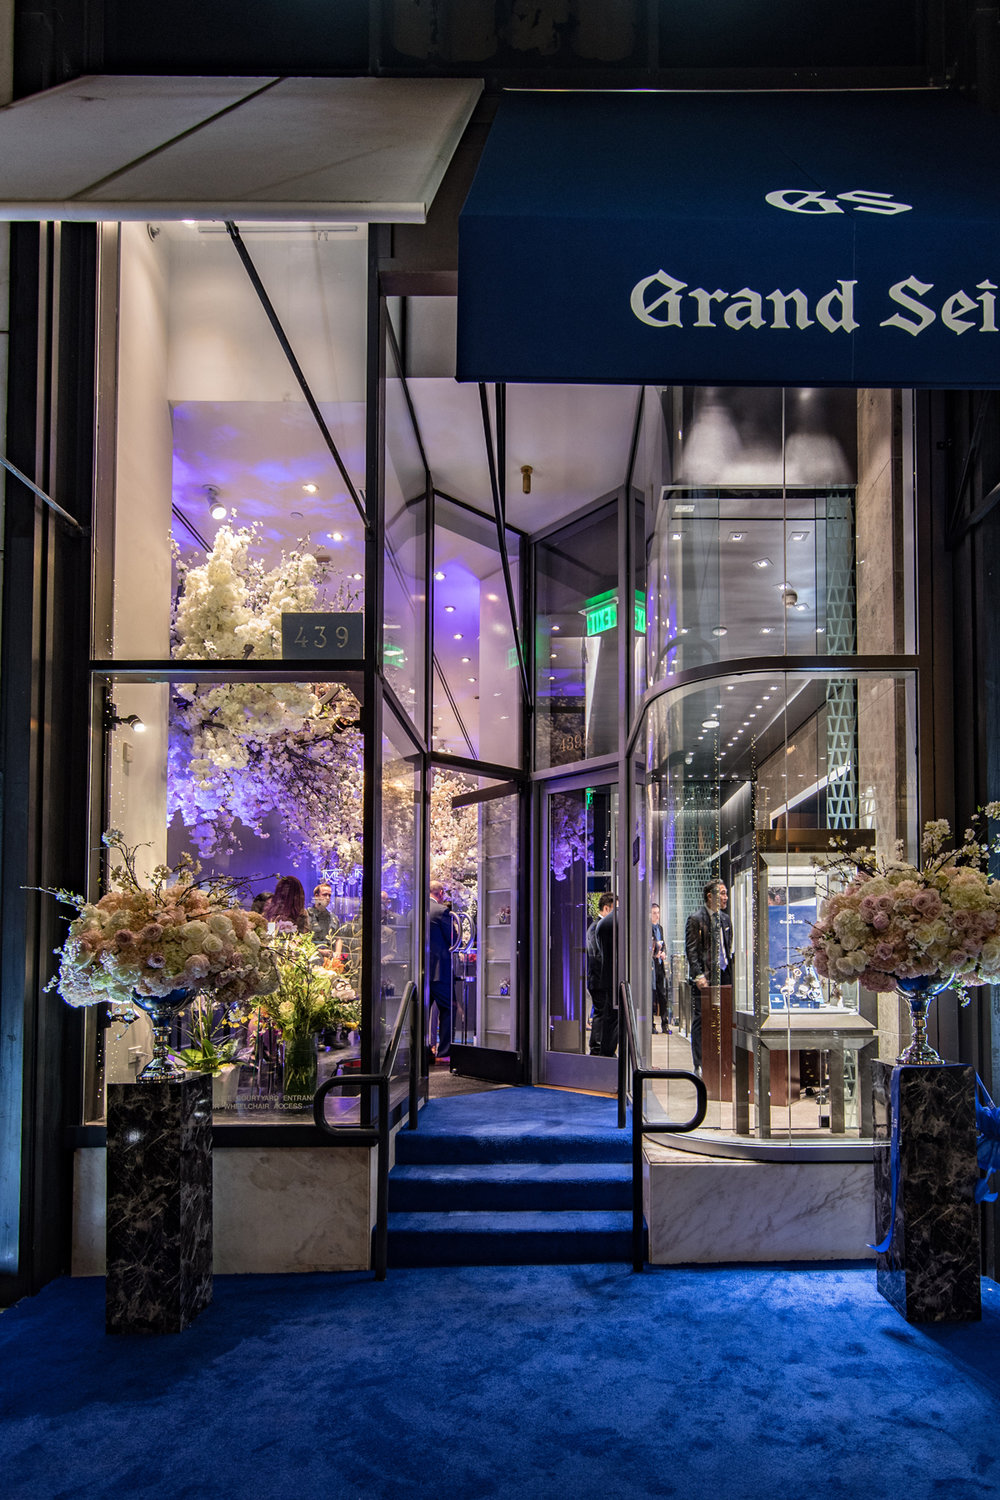 Grand Seiko Boutique Grand Affair Beverly Hills Store Opening Blue Carpet Leading into Store.jpg